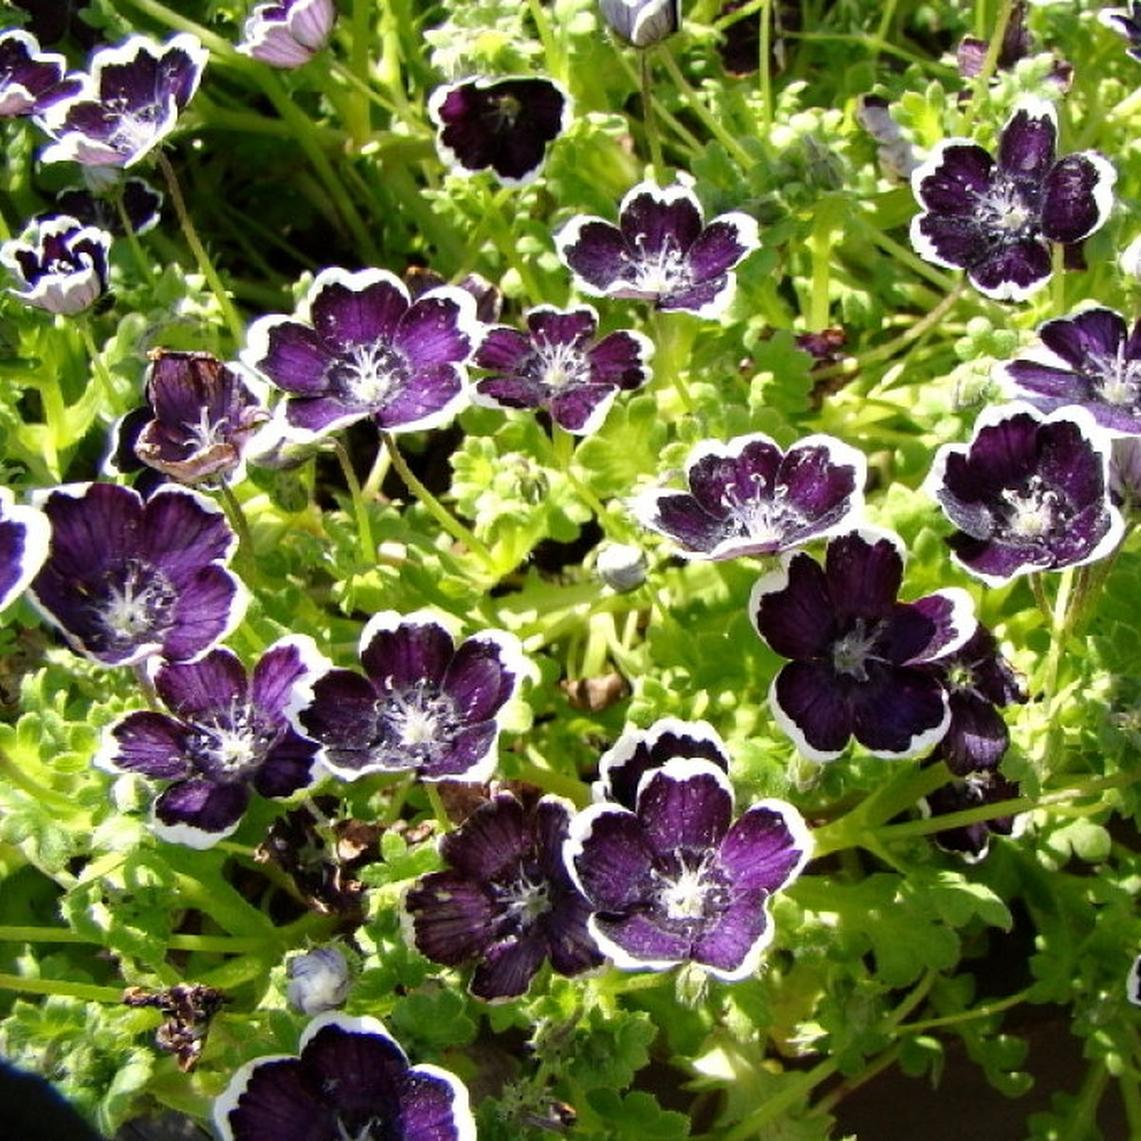 Nemophila Seeds - Penny Black